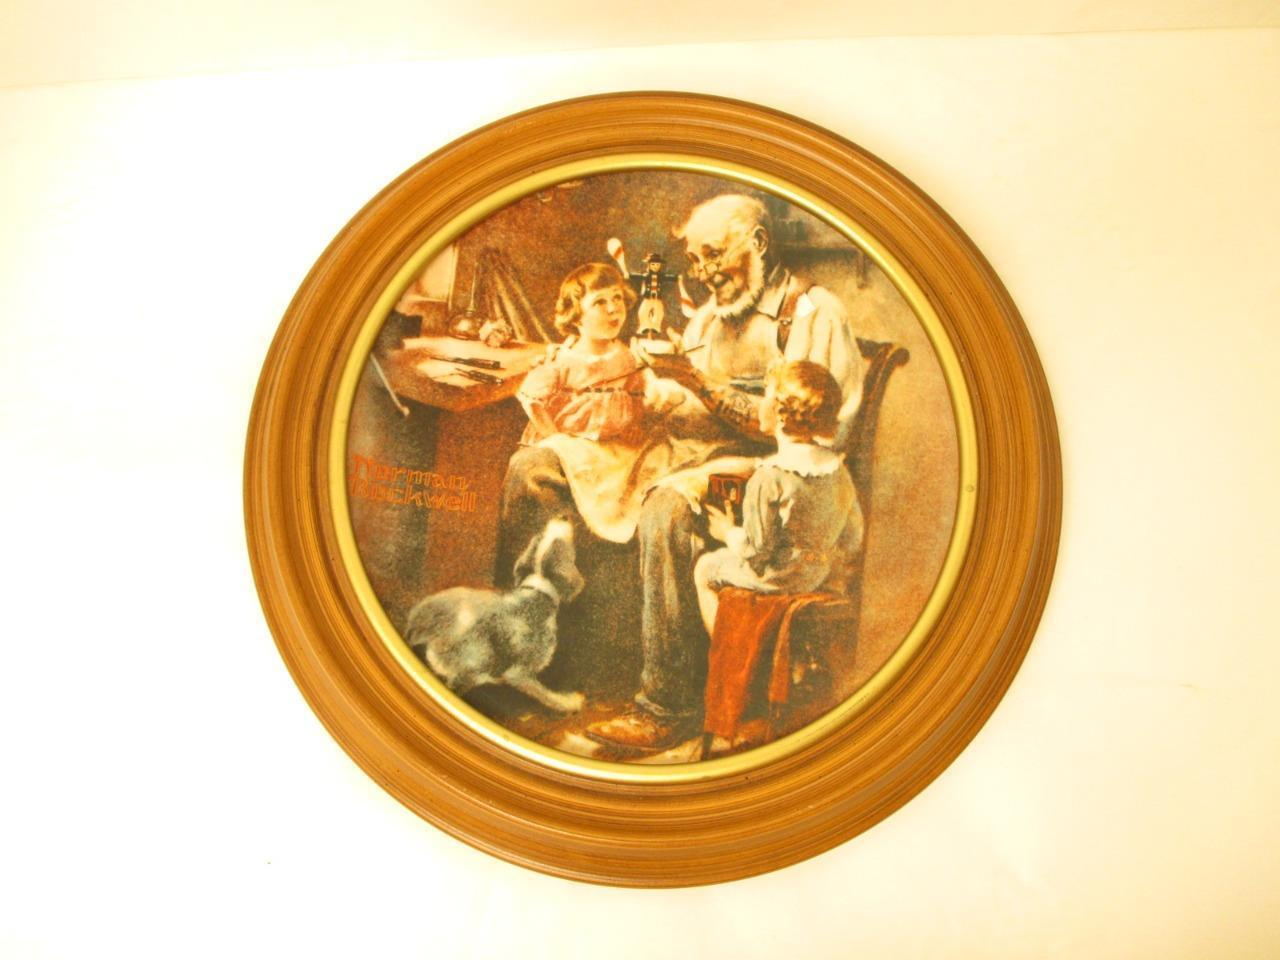 Primary image for Rockwell The Toy Maker Plate  Limited Edition No 6,3875